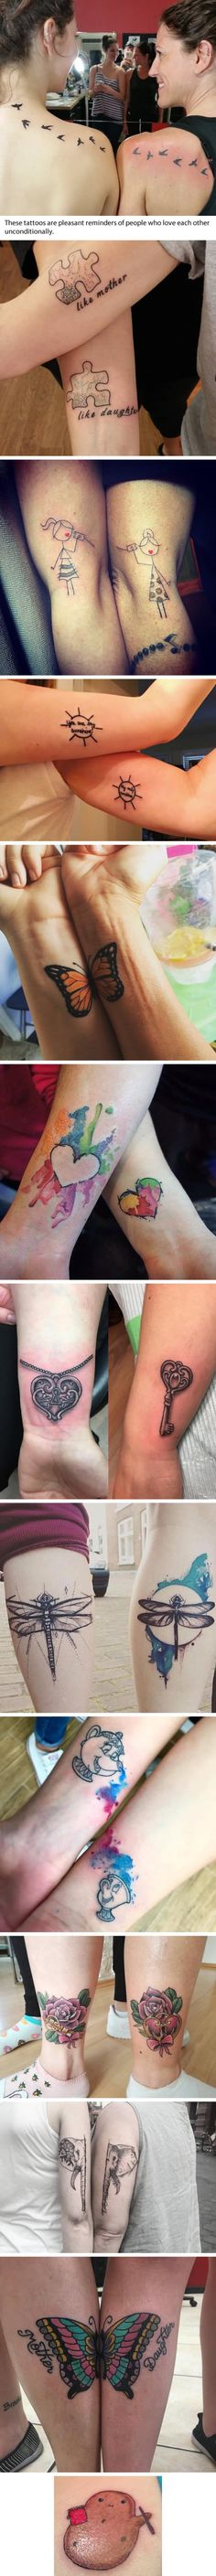 Mother-Daughter Tattoos Celebrating Their Special Life-Long Bond